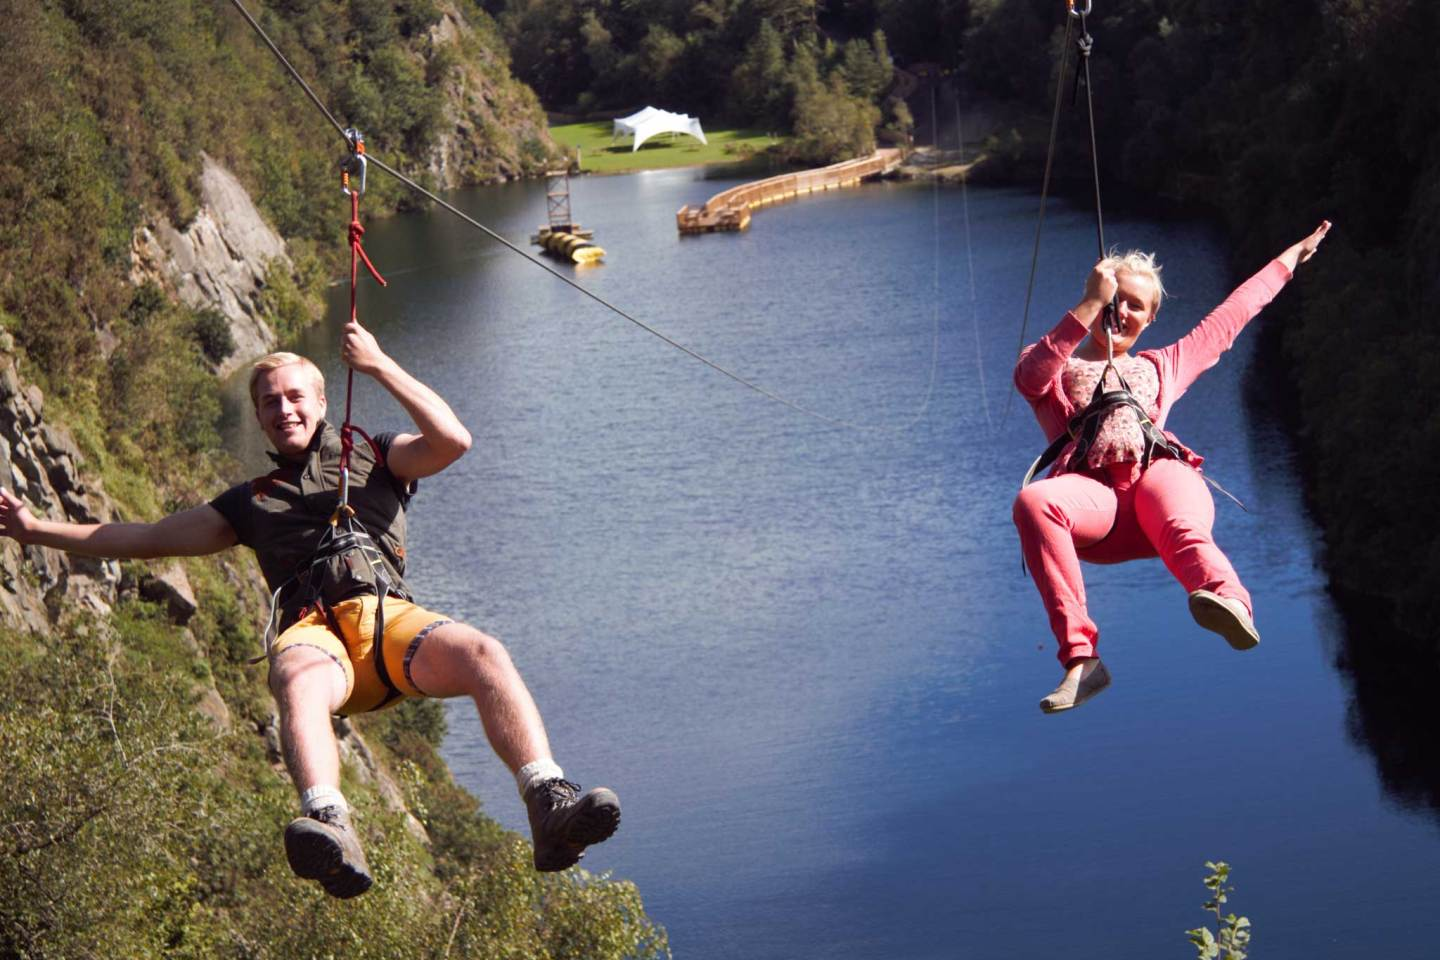 Zip Line over a lake at the adrenalin quarry in Cornwall